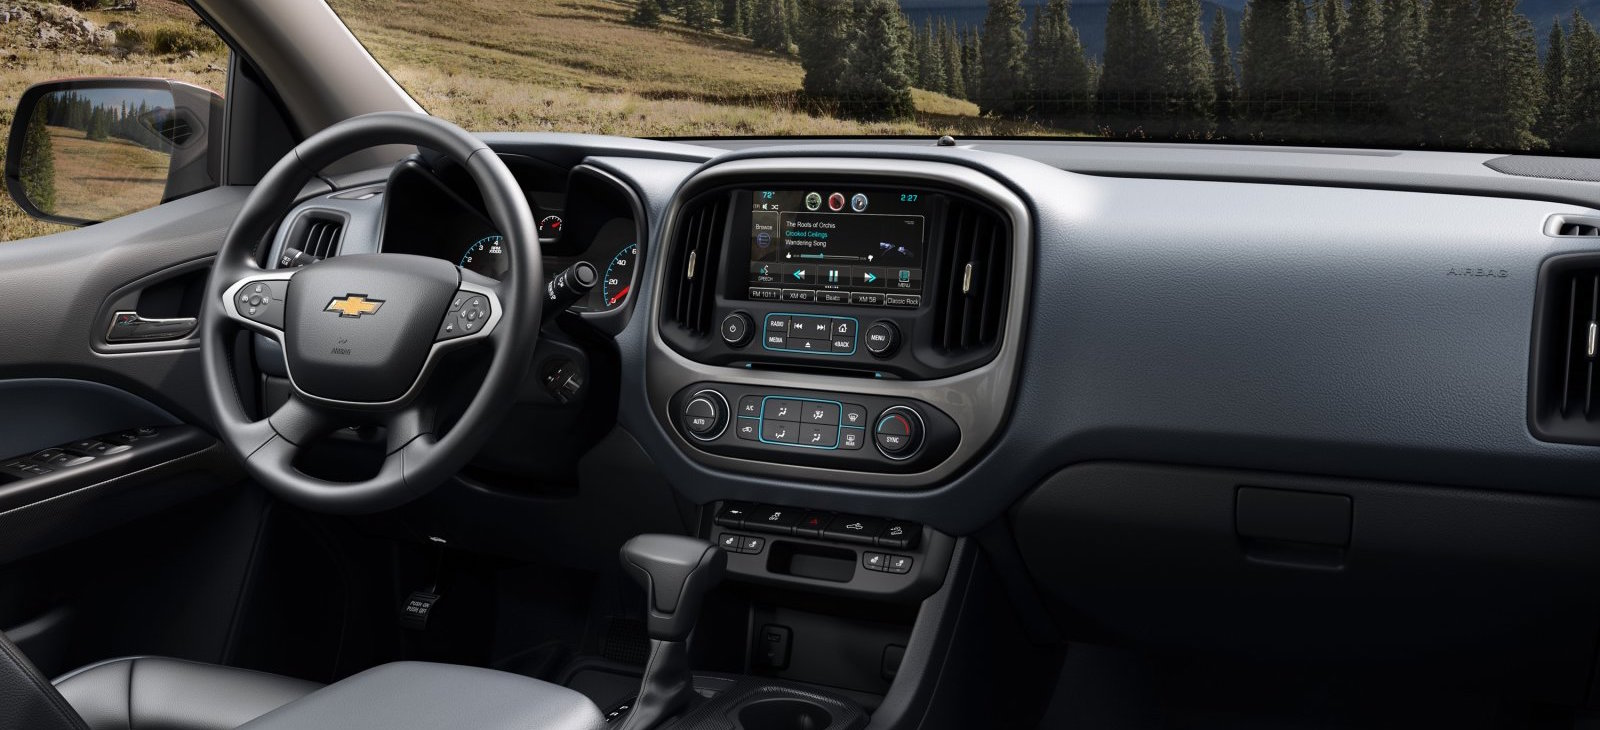 The black and grey interior of a 2016 Chevy Colorado with a touchscreen is shown.